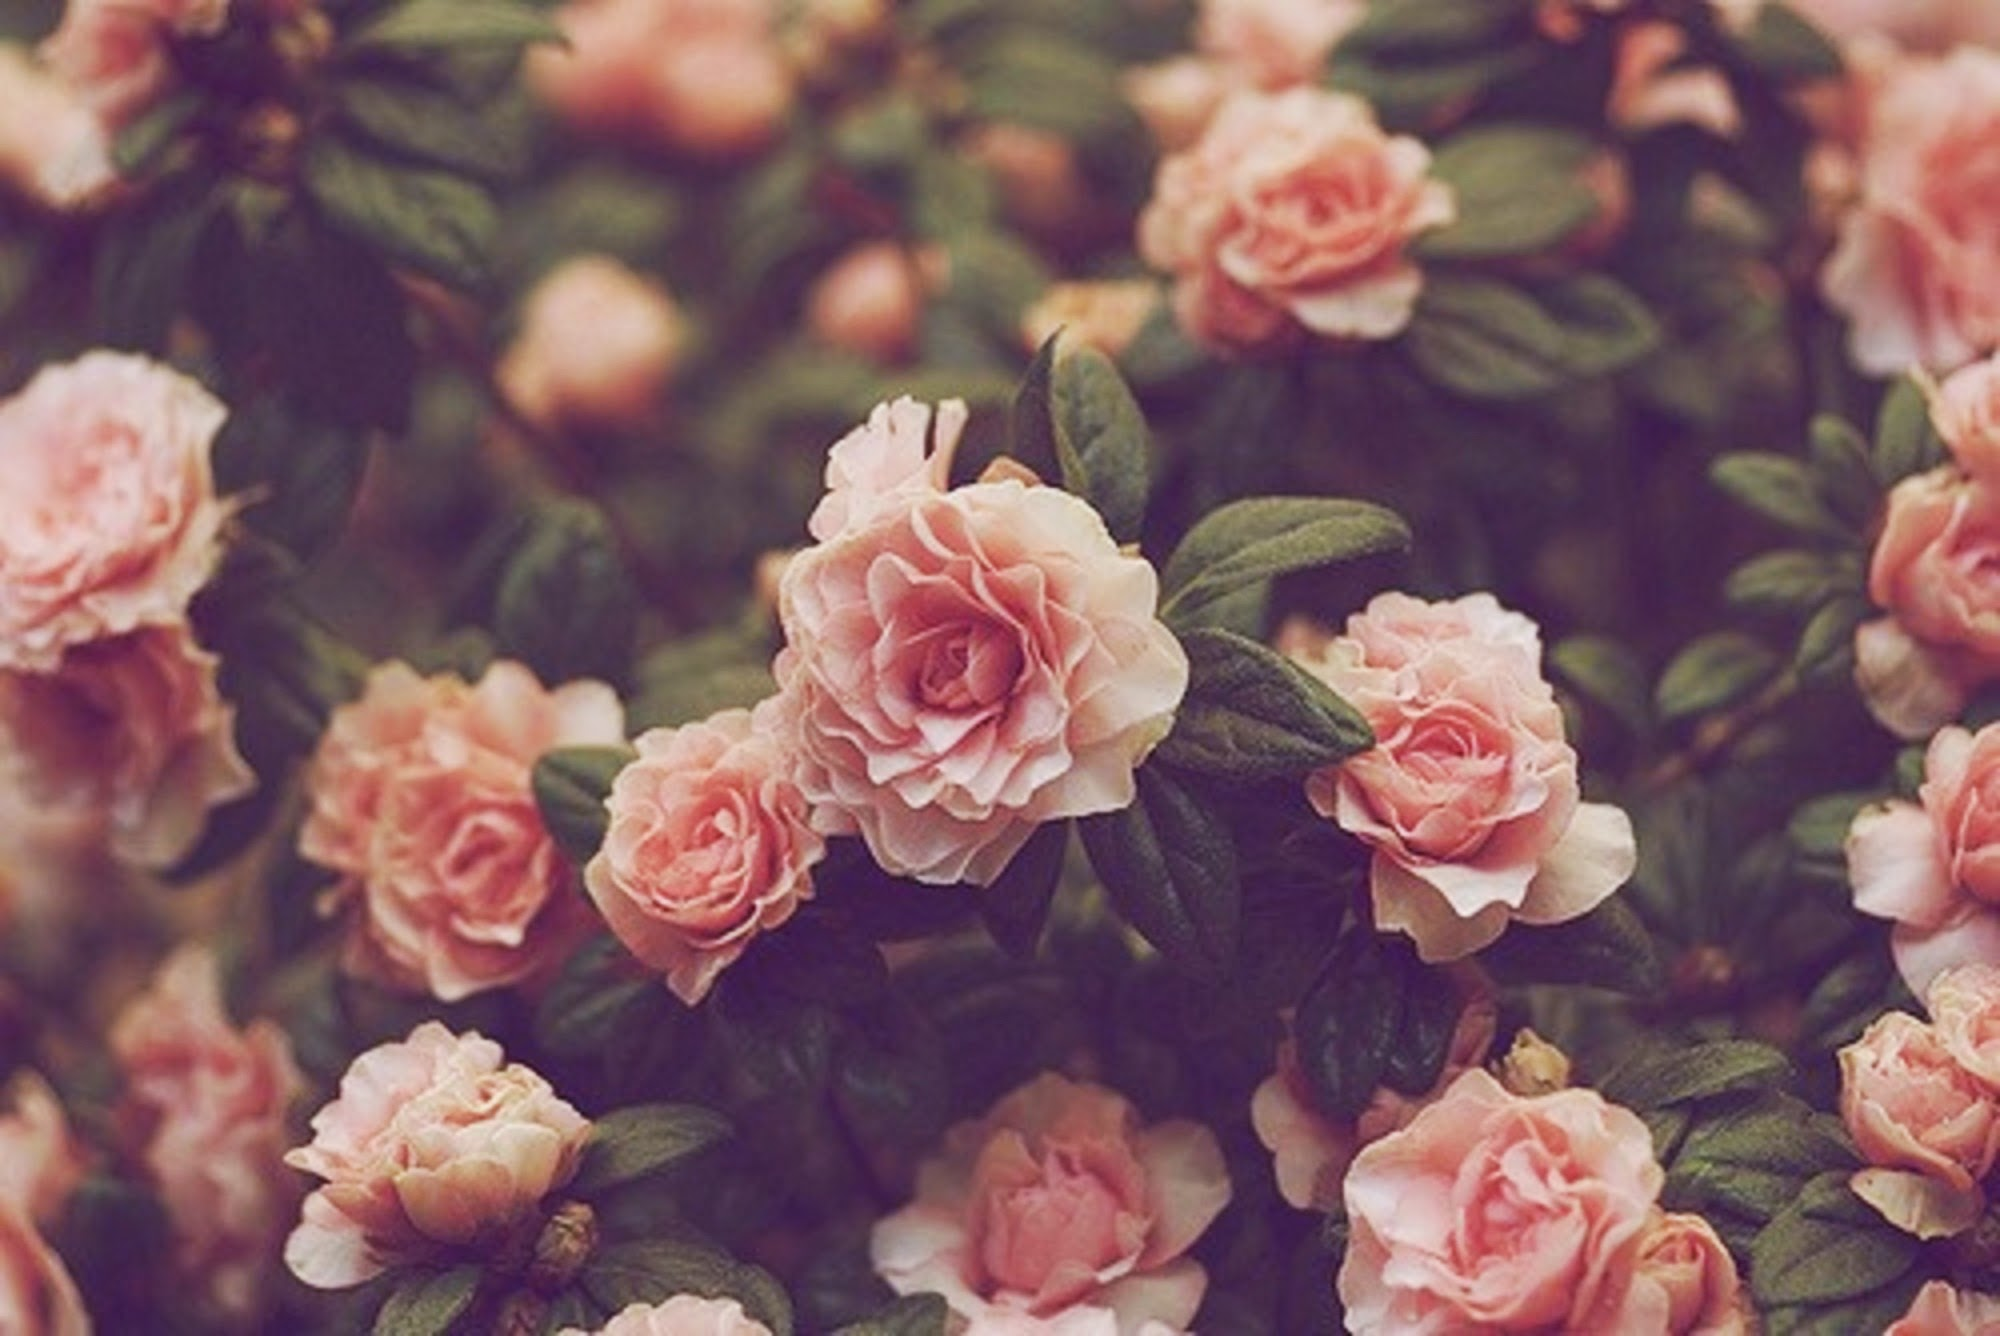 Collection of Floral Wallpaper Tumblr on HDWallpapers